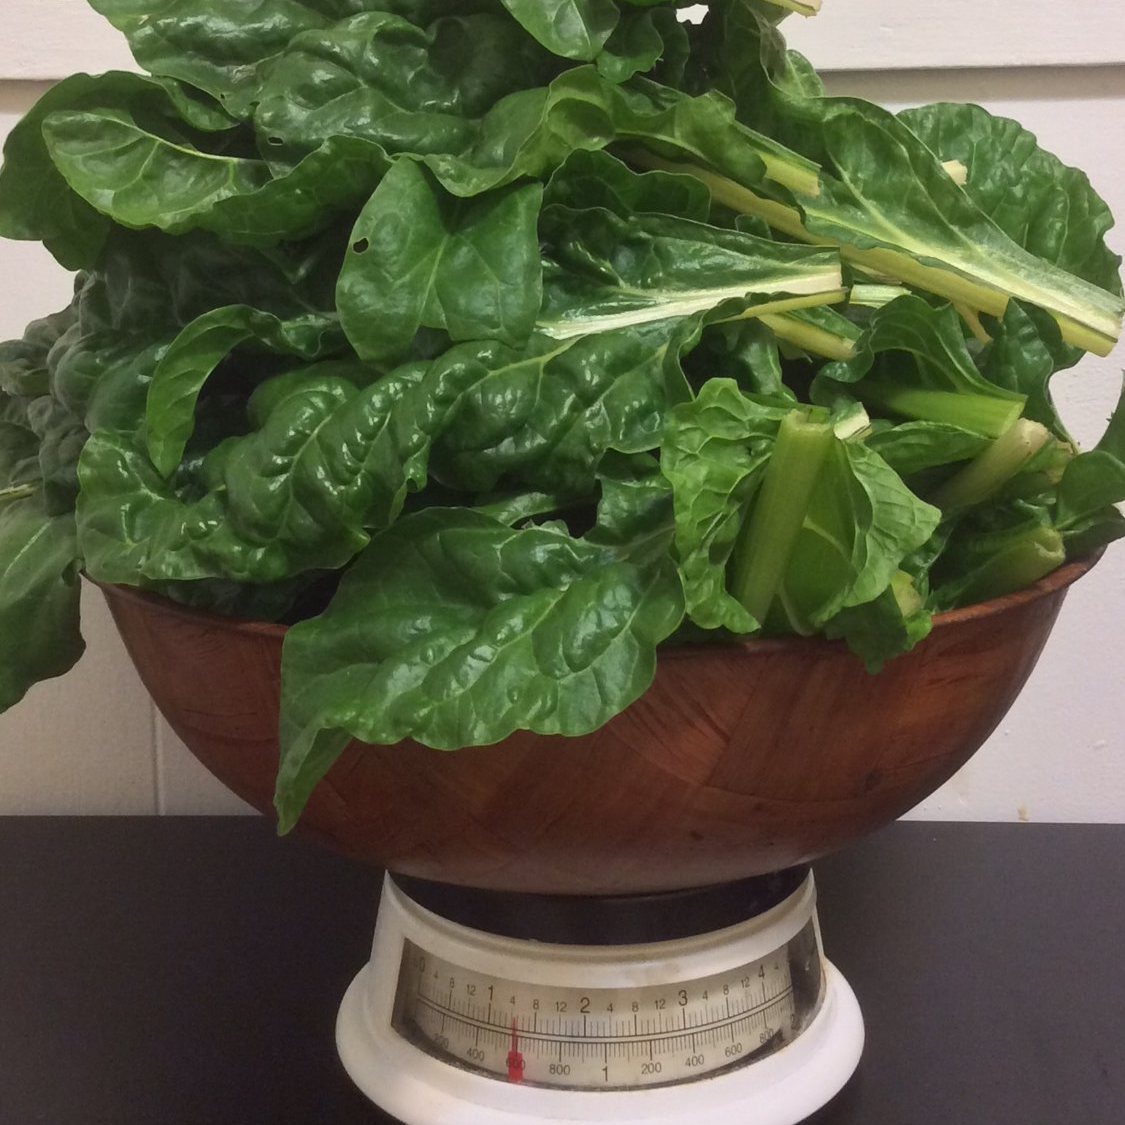 chard from the garden